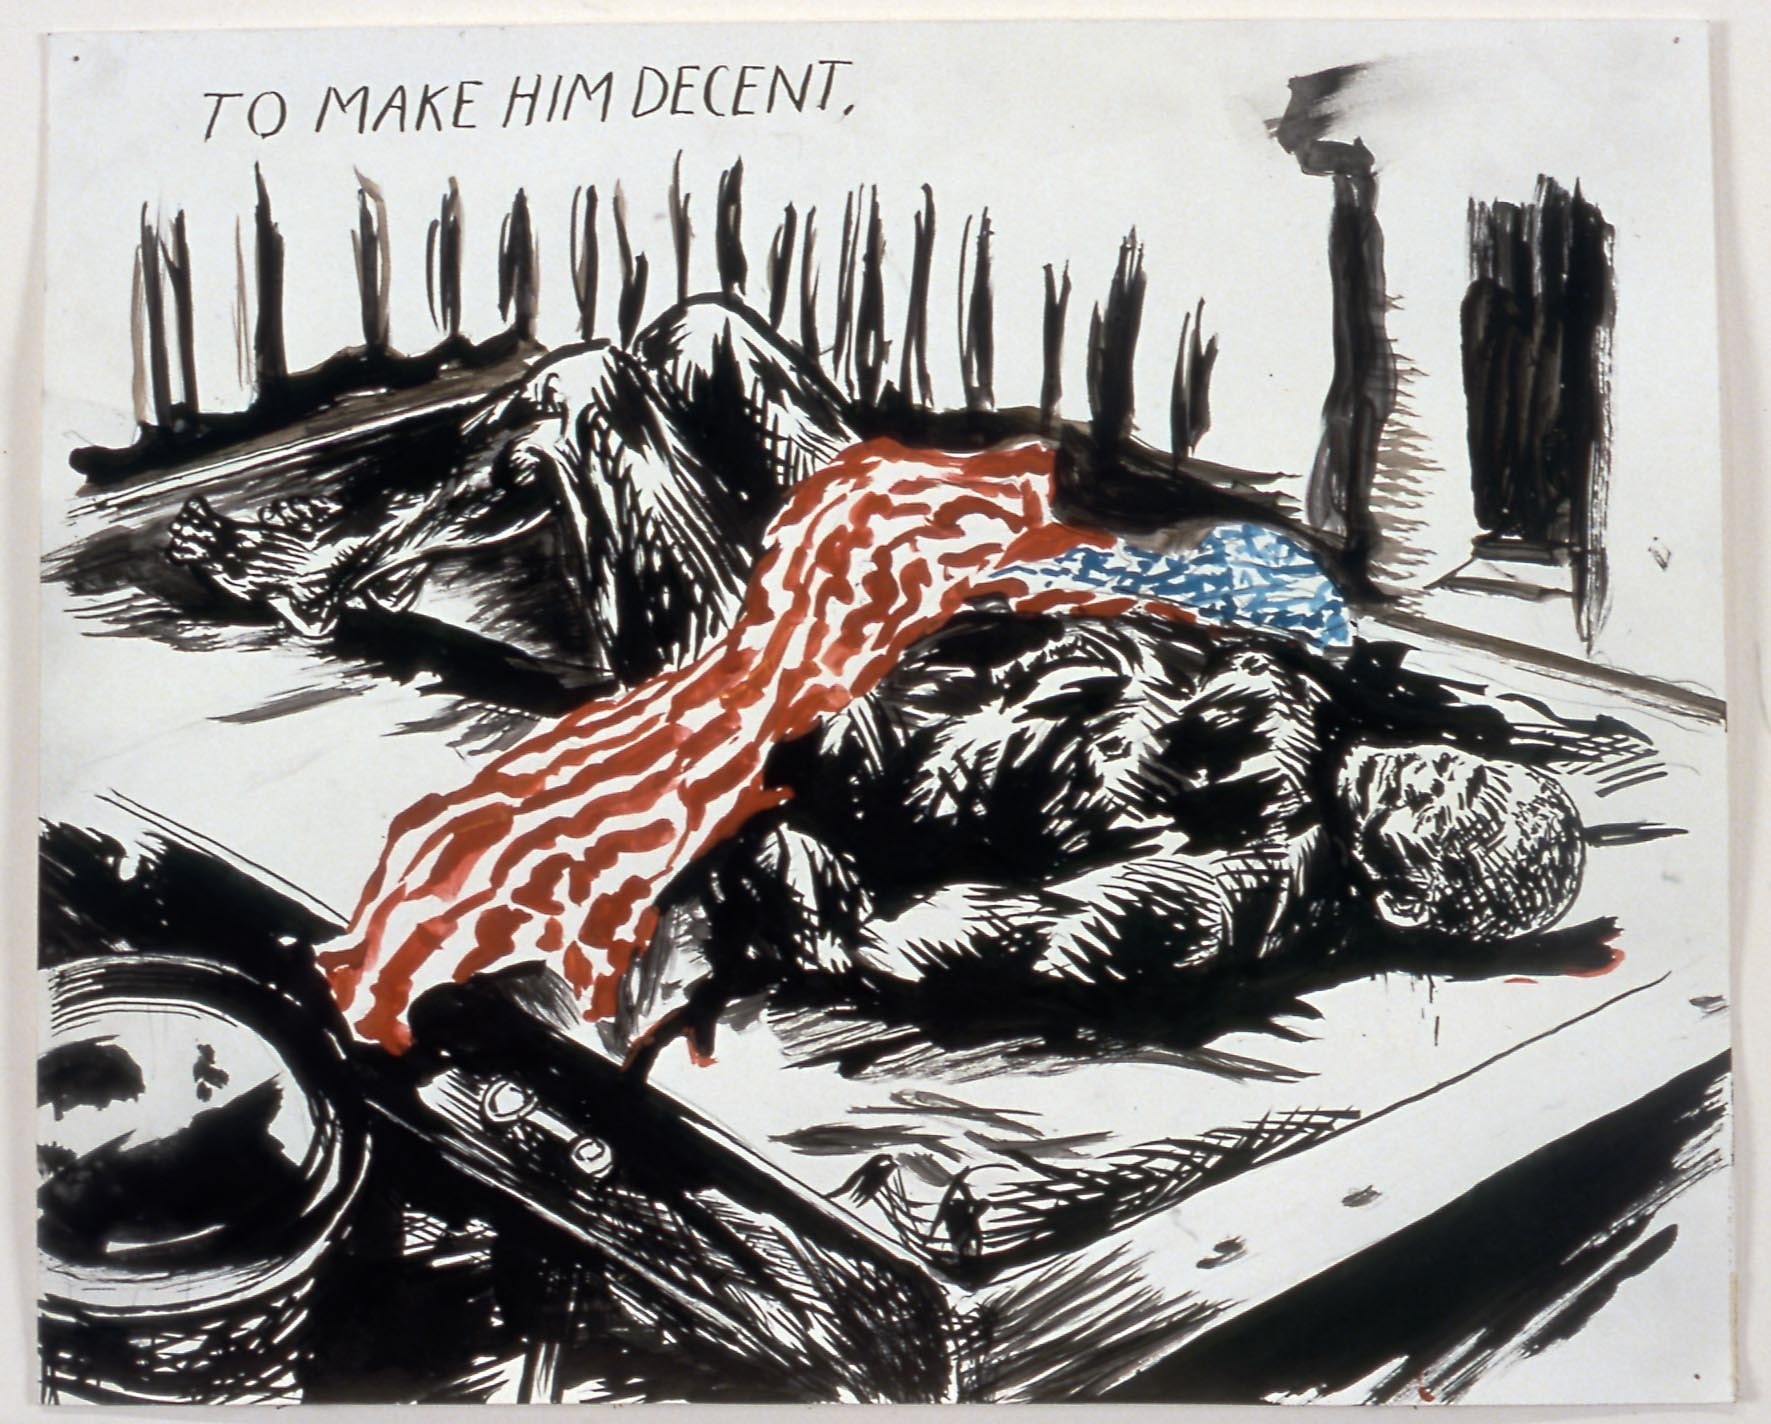 Raymond Pettibon's Rage Against the Machine - culture - StyleZeitgeist, Raymond Pettibon, Rage Against the Machine, Eugene Rabkin, Culture, 2017